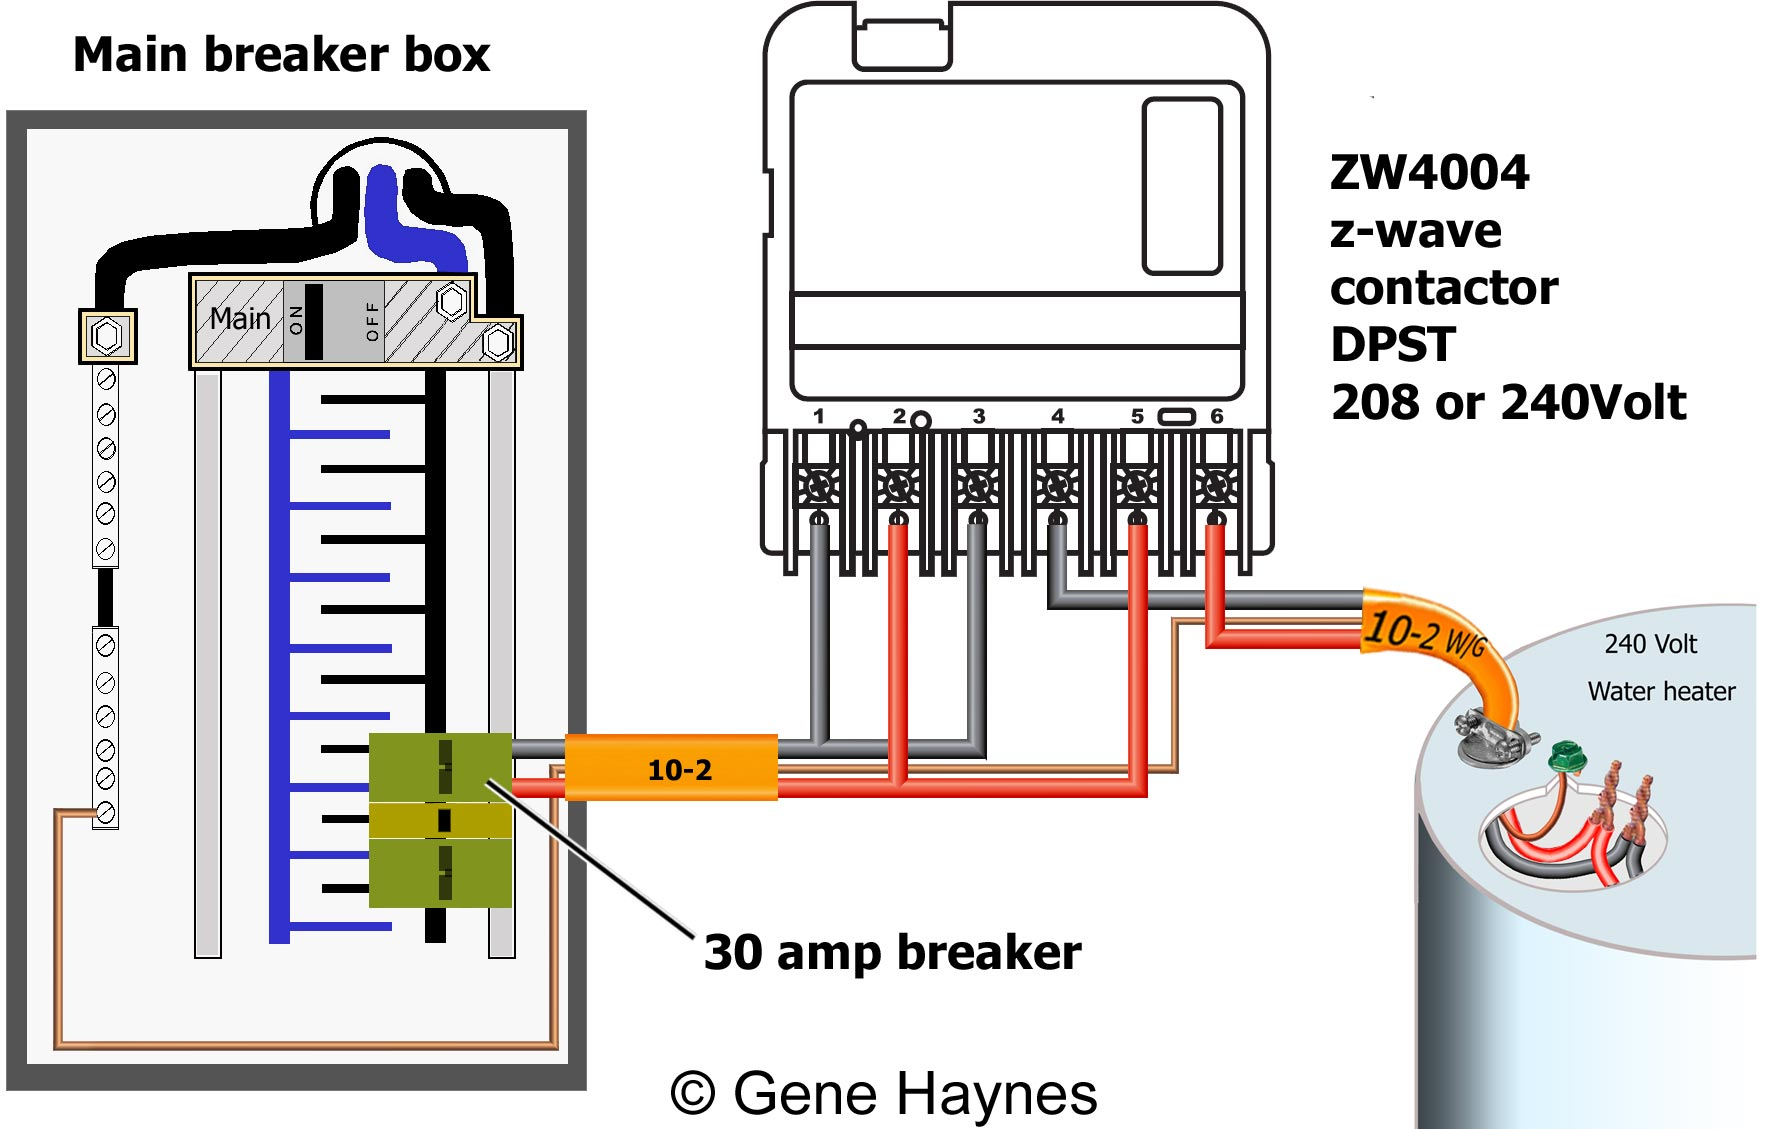 ZW4004 wiring DPST 208 240 how to wire ca3750 z wave contactor zwave basics 208 Single Phase Wiring Diagram at gsmportal.co